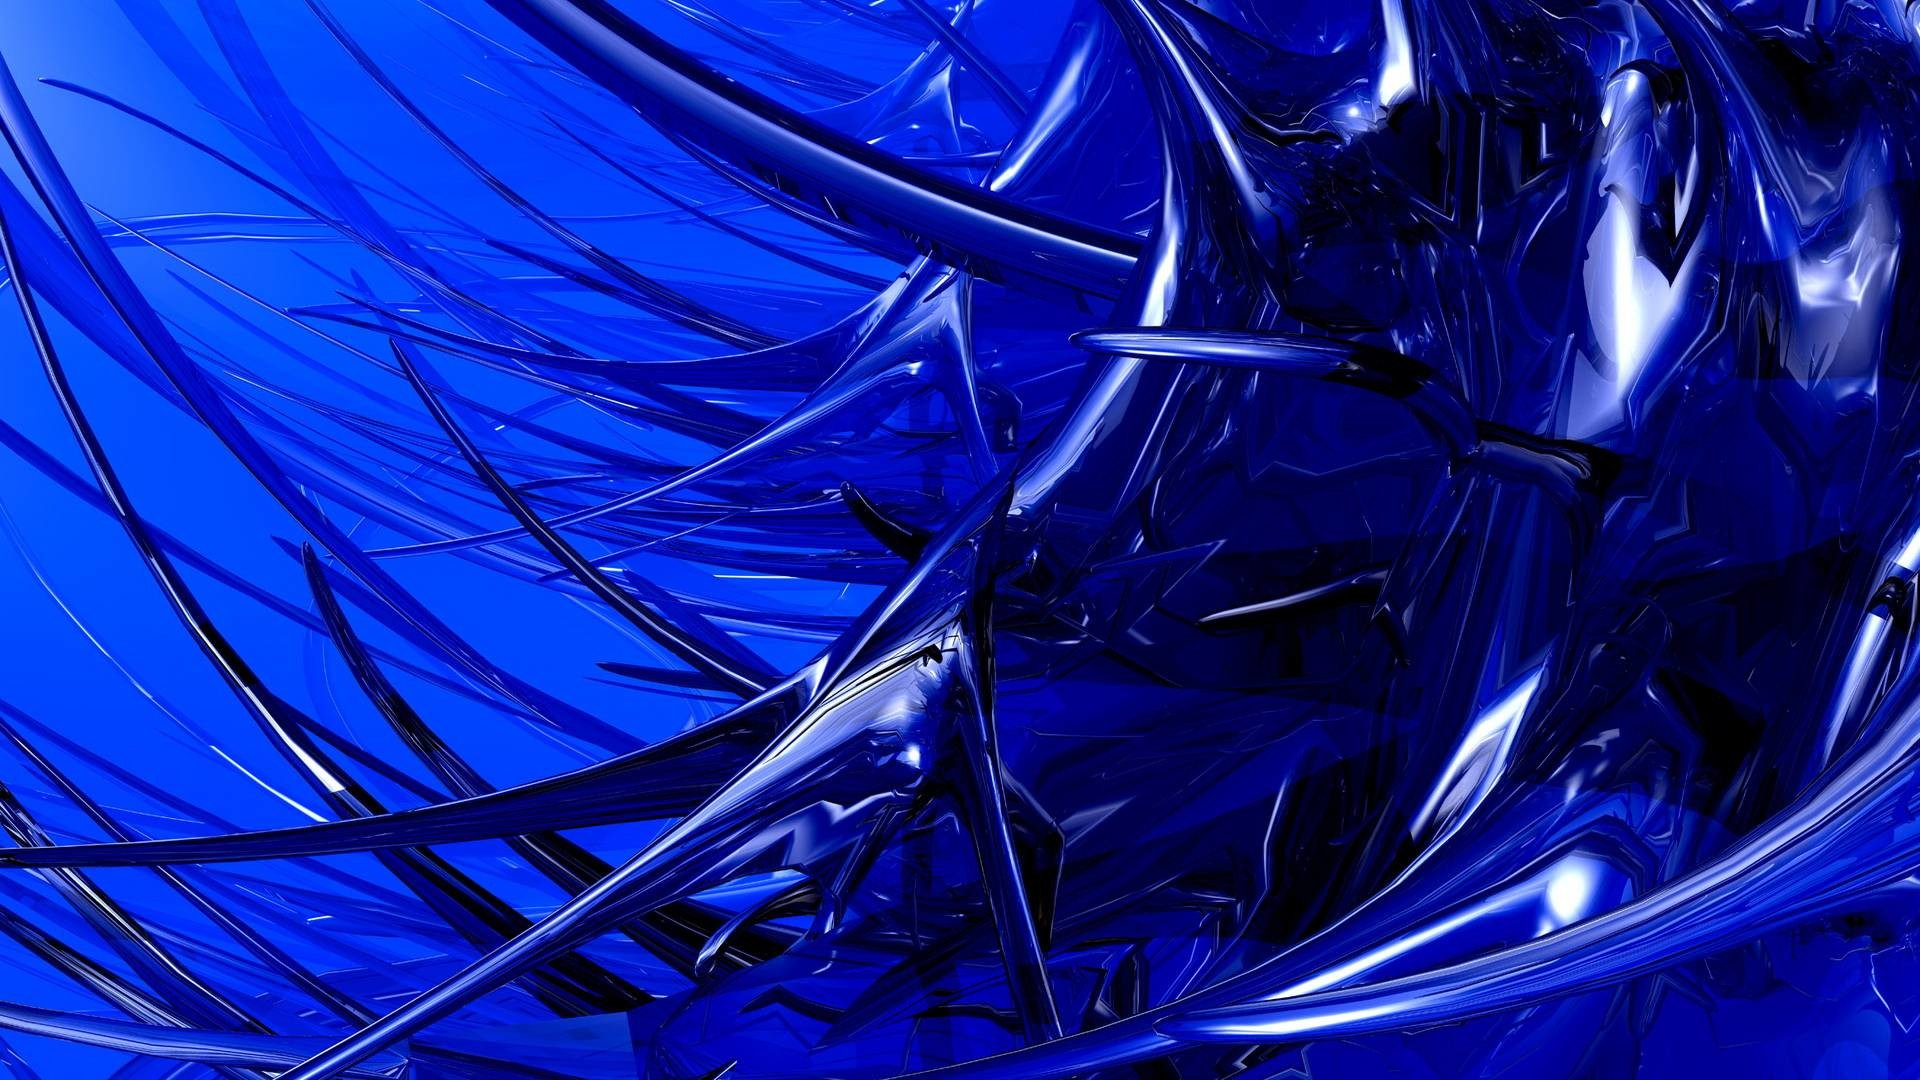 Wallpapers For > Navy Blue Abstract Wallpaper